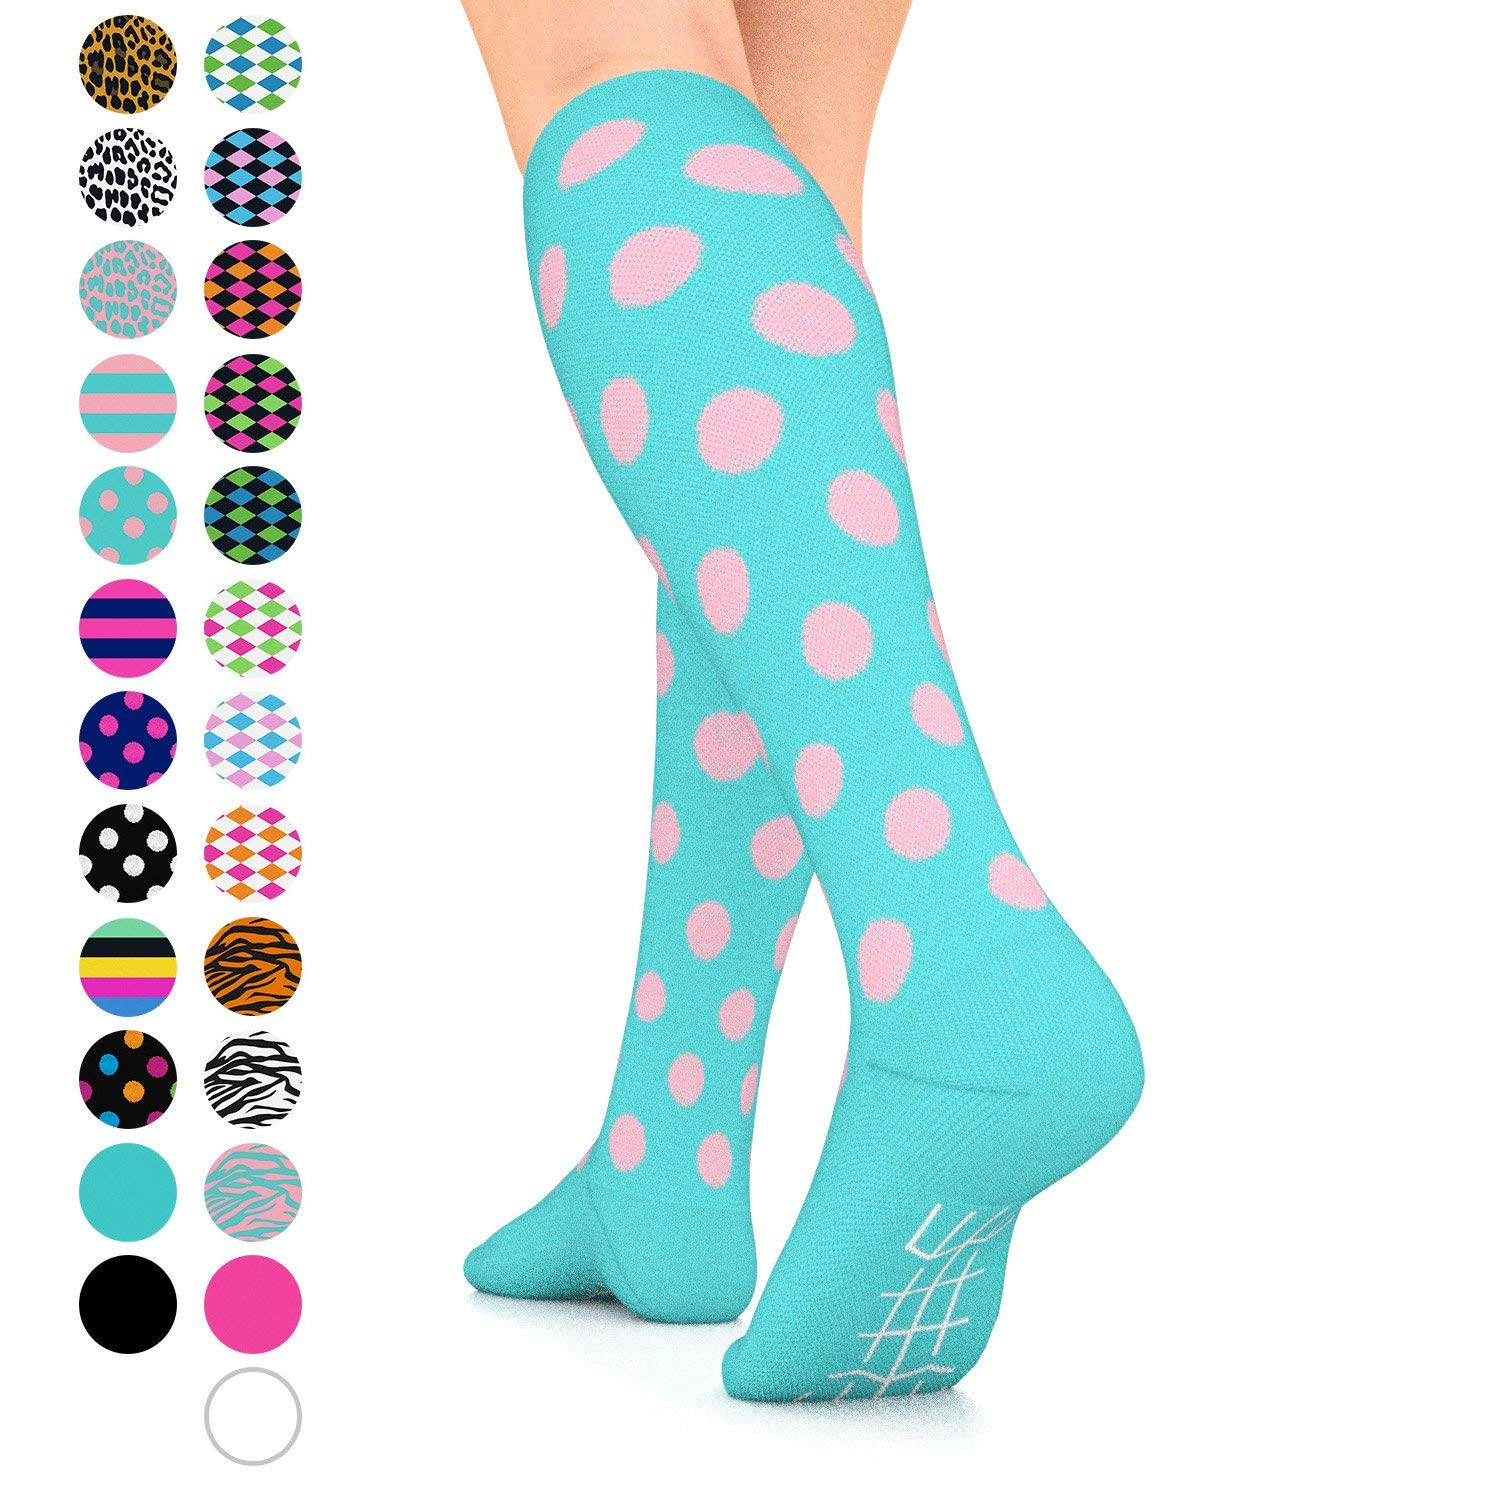 #6 Compression Socks - They're ugly but they work